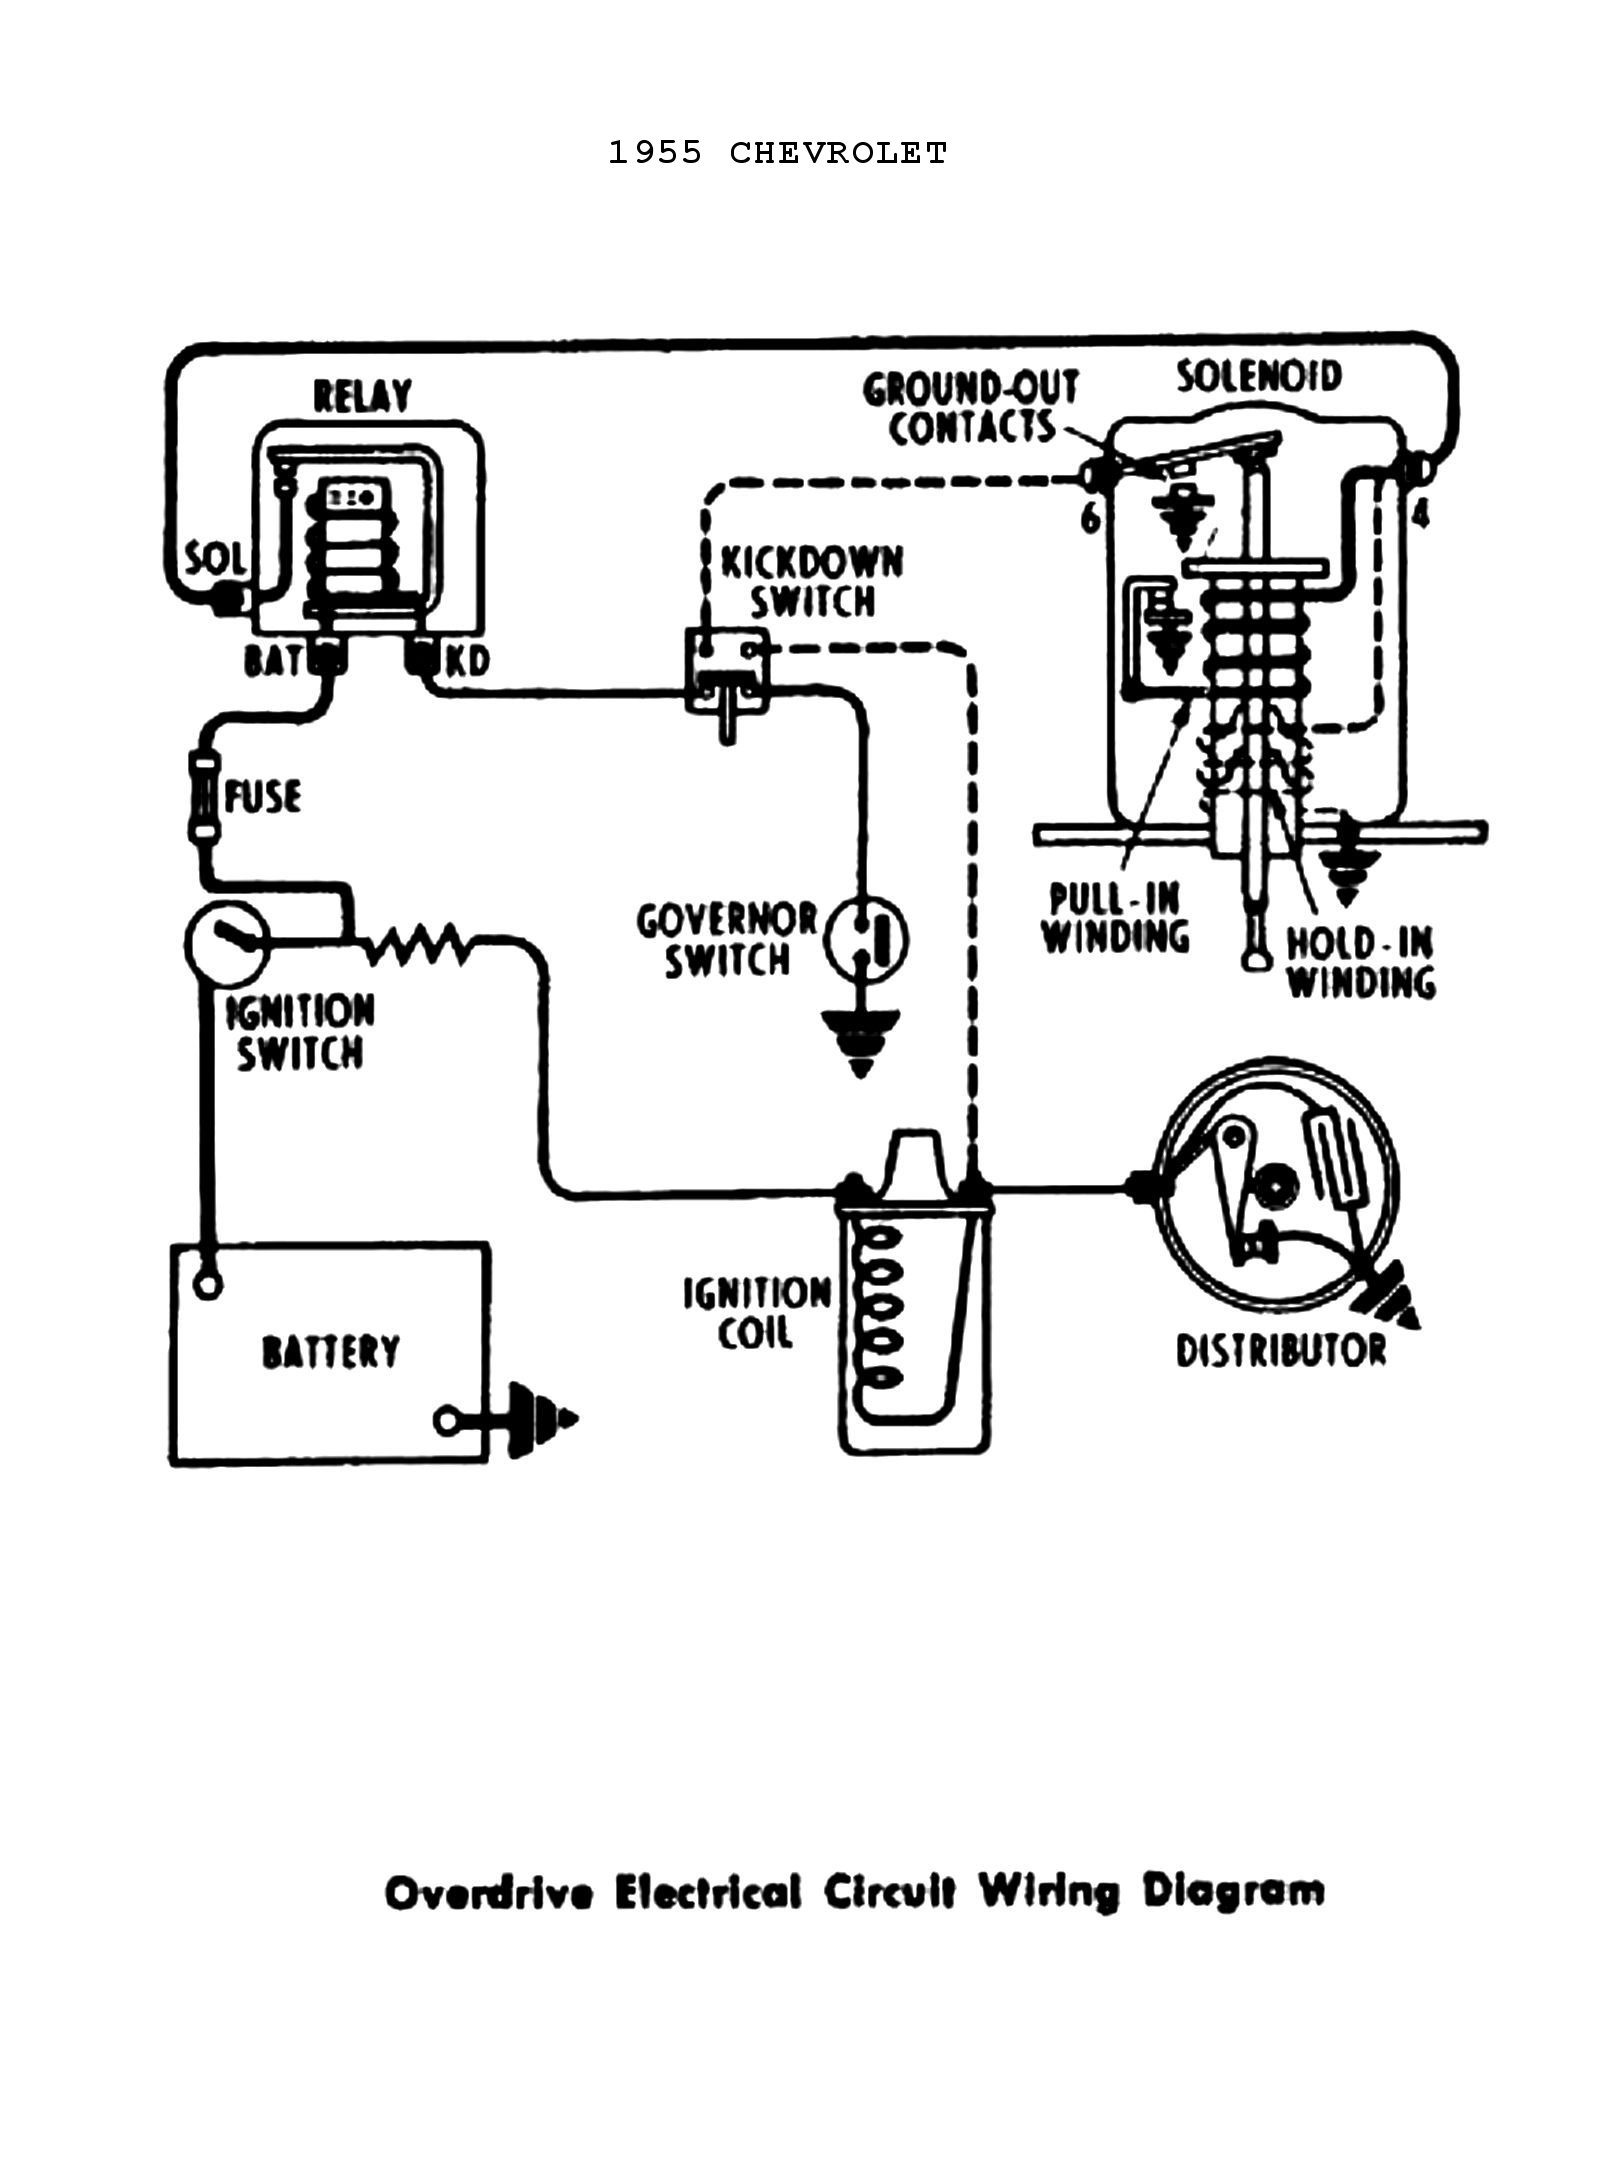 Instrument Panel Wiring Diagram G Models For 1979 Gmc Light Duty Truck Part 2 moreover RepairGuideContent further Uniden Cb Mic Wiring Diagram additionally Discussion T16272 ds549908 additionally 896280 Help Wiring Up Push Start Button And Ign Switch. on 85 toyota wiring harness